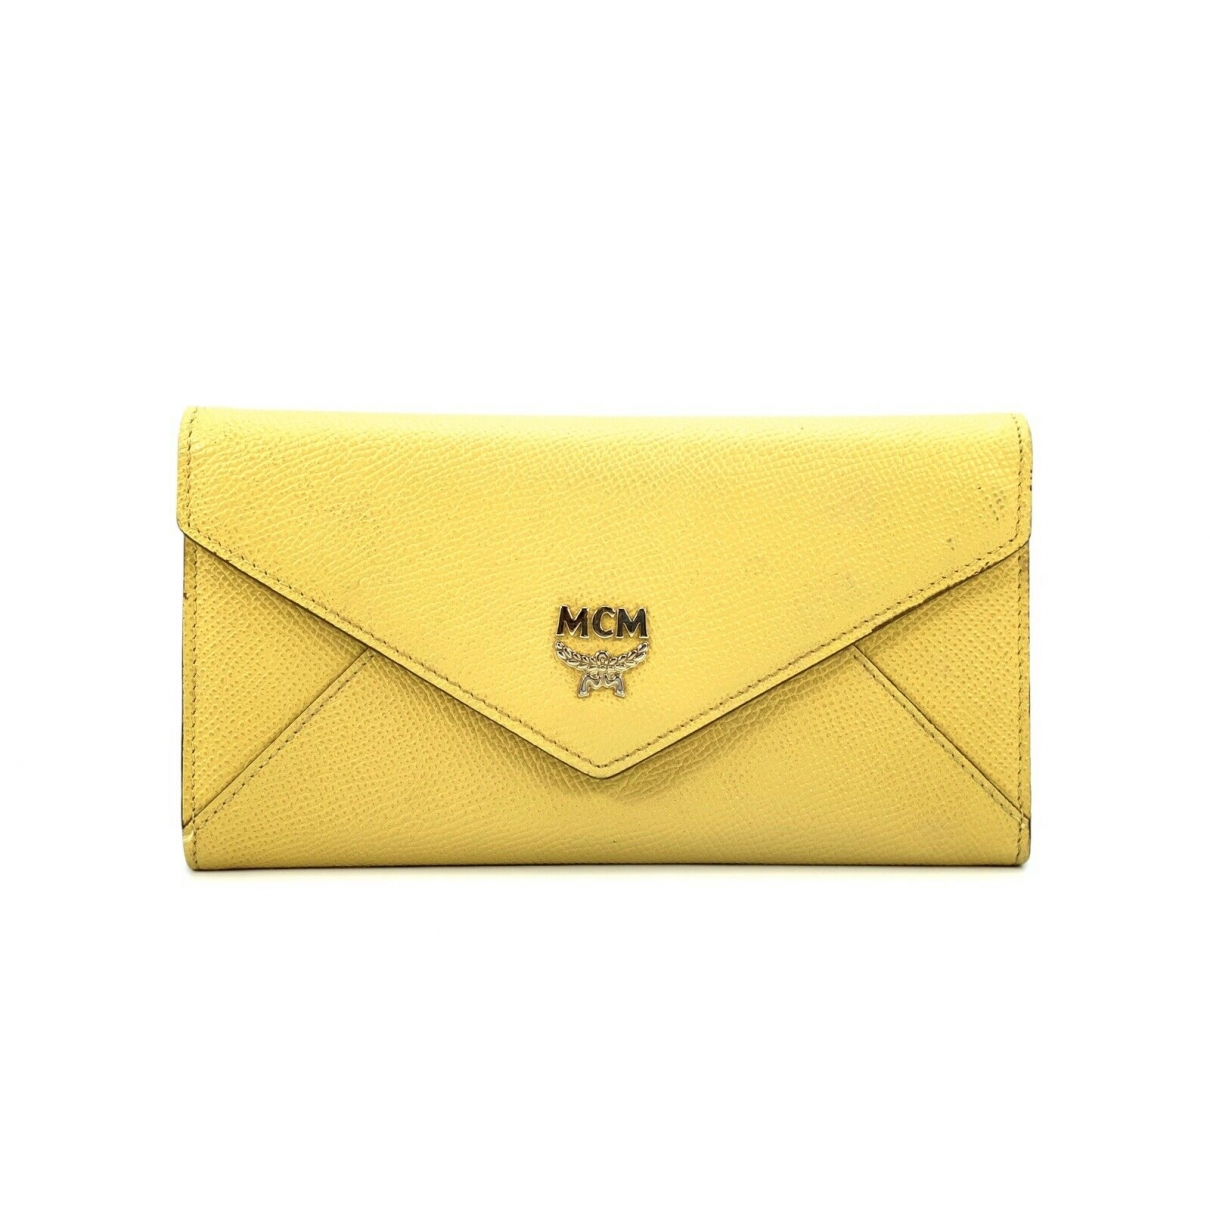 Mcm \N Yellow Leather wallet for Women \N